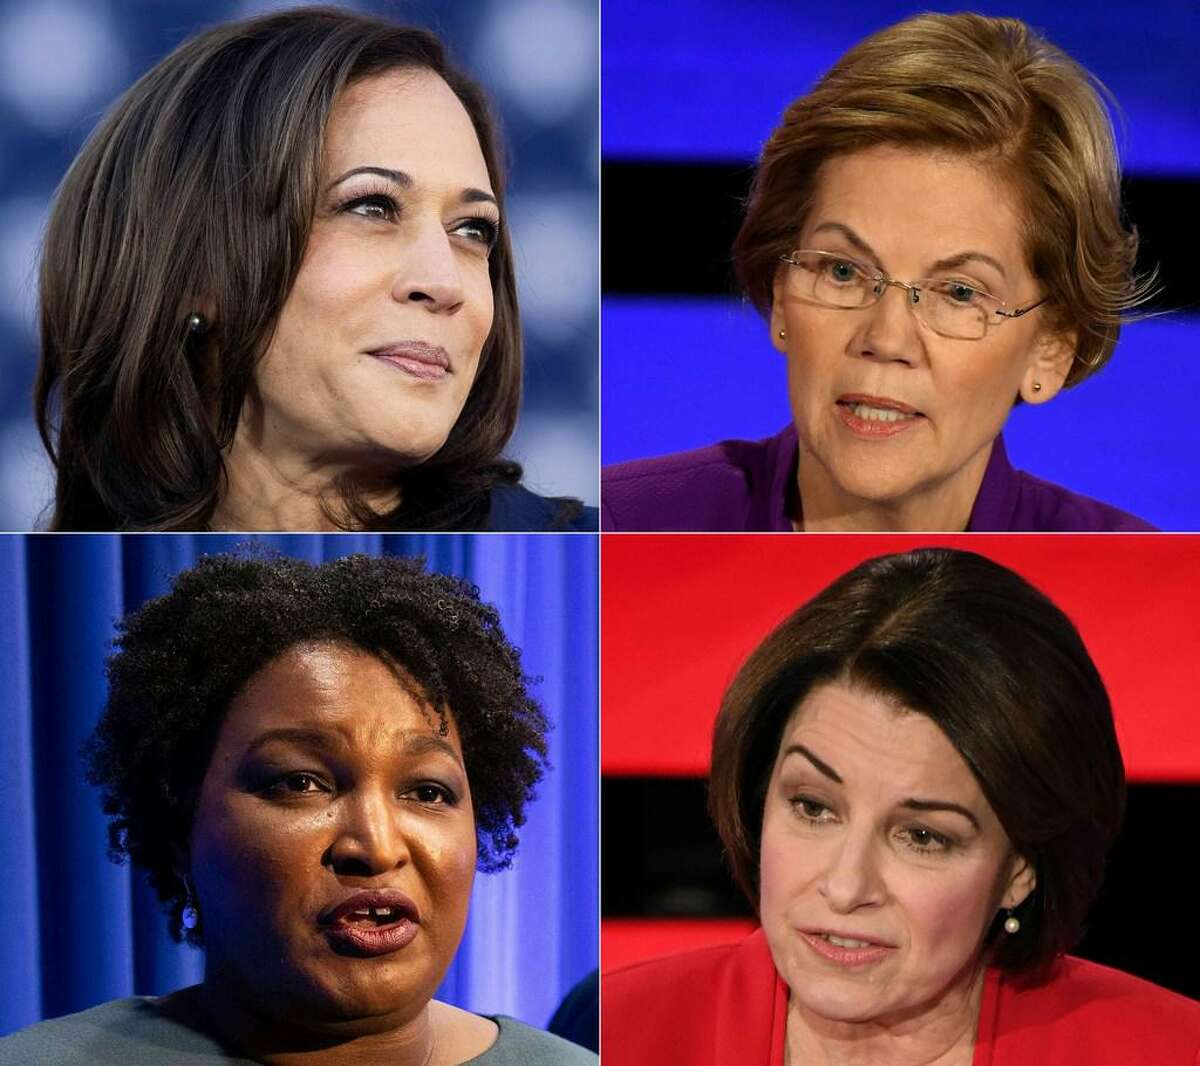 his combination of pictures created on April 09, 2020 shows (L-R, top to bottom) US Senator Kamala Harris on January 27, 2019 in Oakland, California; US Senator Elizabeth Warren on January 14, 2020, in Des Moines, Iowa; former Georgia Democratic gubernatorial candidate Stacey Abrams on November 20, 2019, in Atlanta, Georgia and US Senator Amy Klobuchar on January 14, 2020, in Des Moines, Iowa.